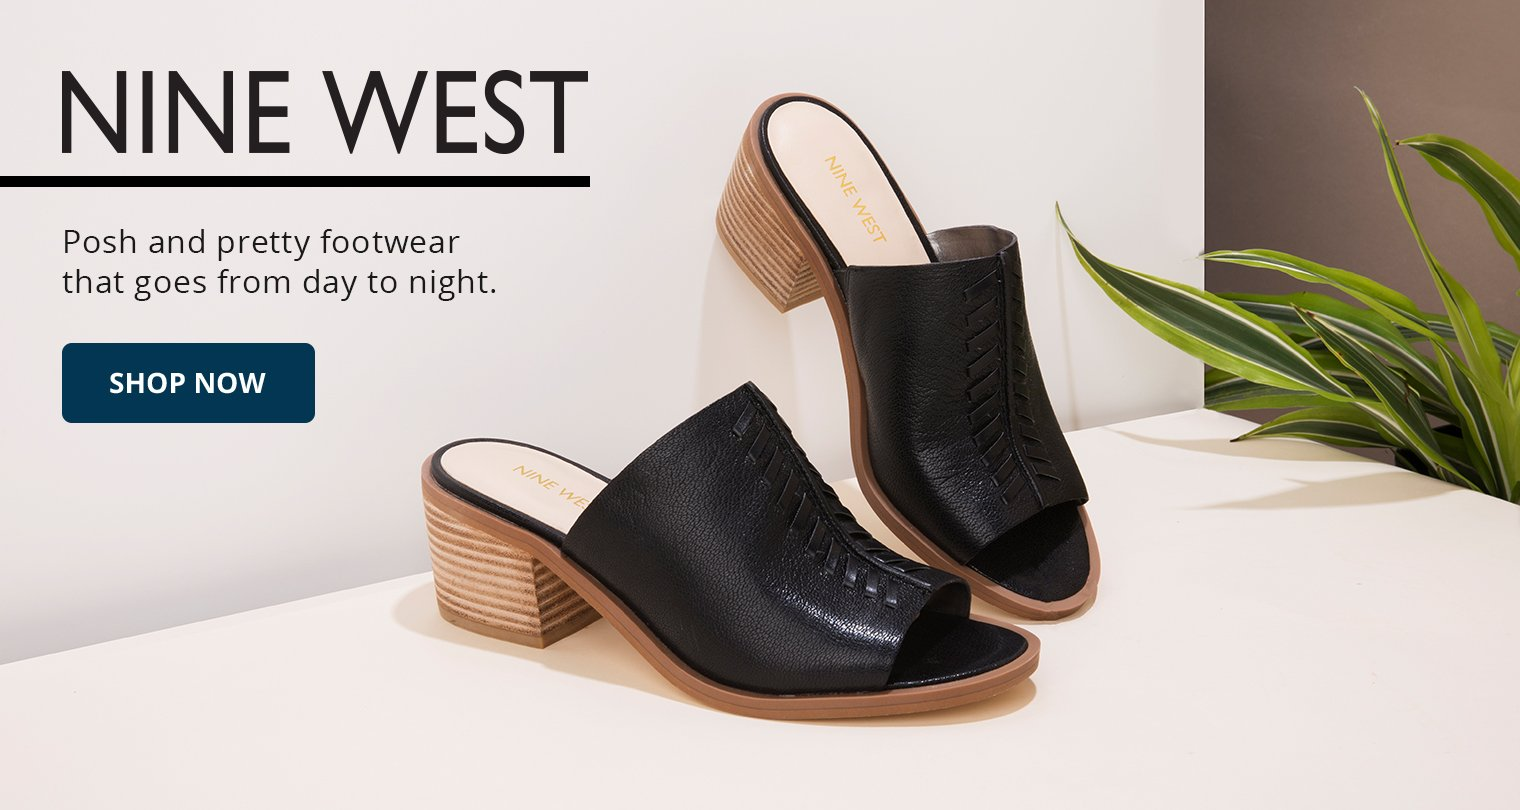 Nine West. Posh and pretty footwear that goes from day to night. Shop Now.